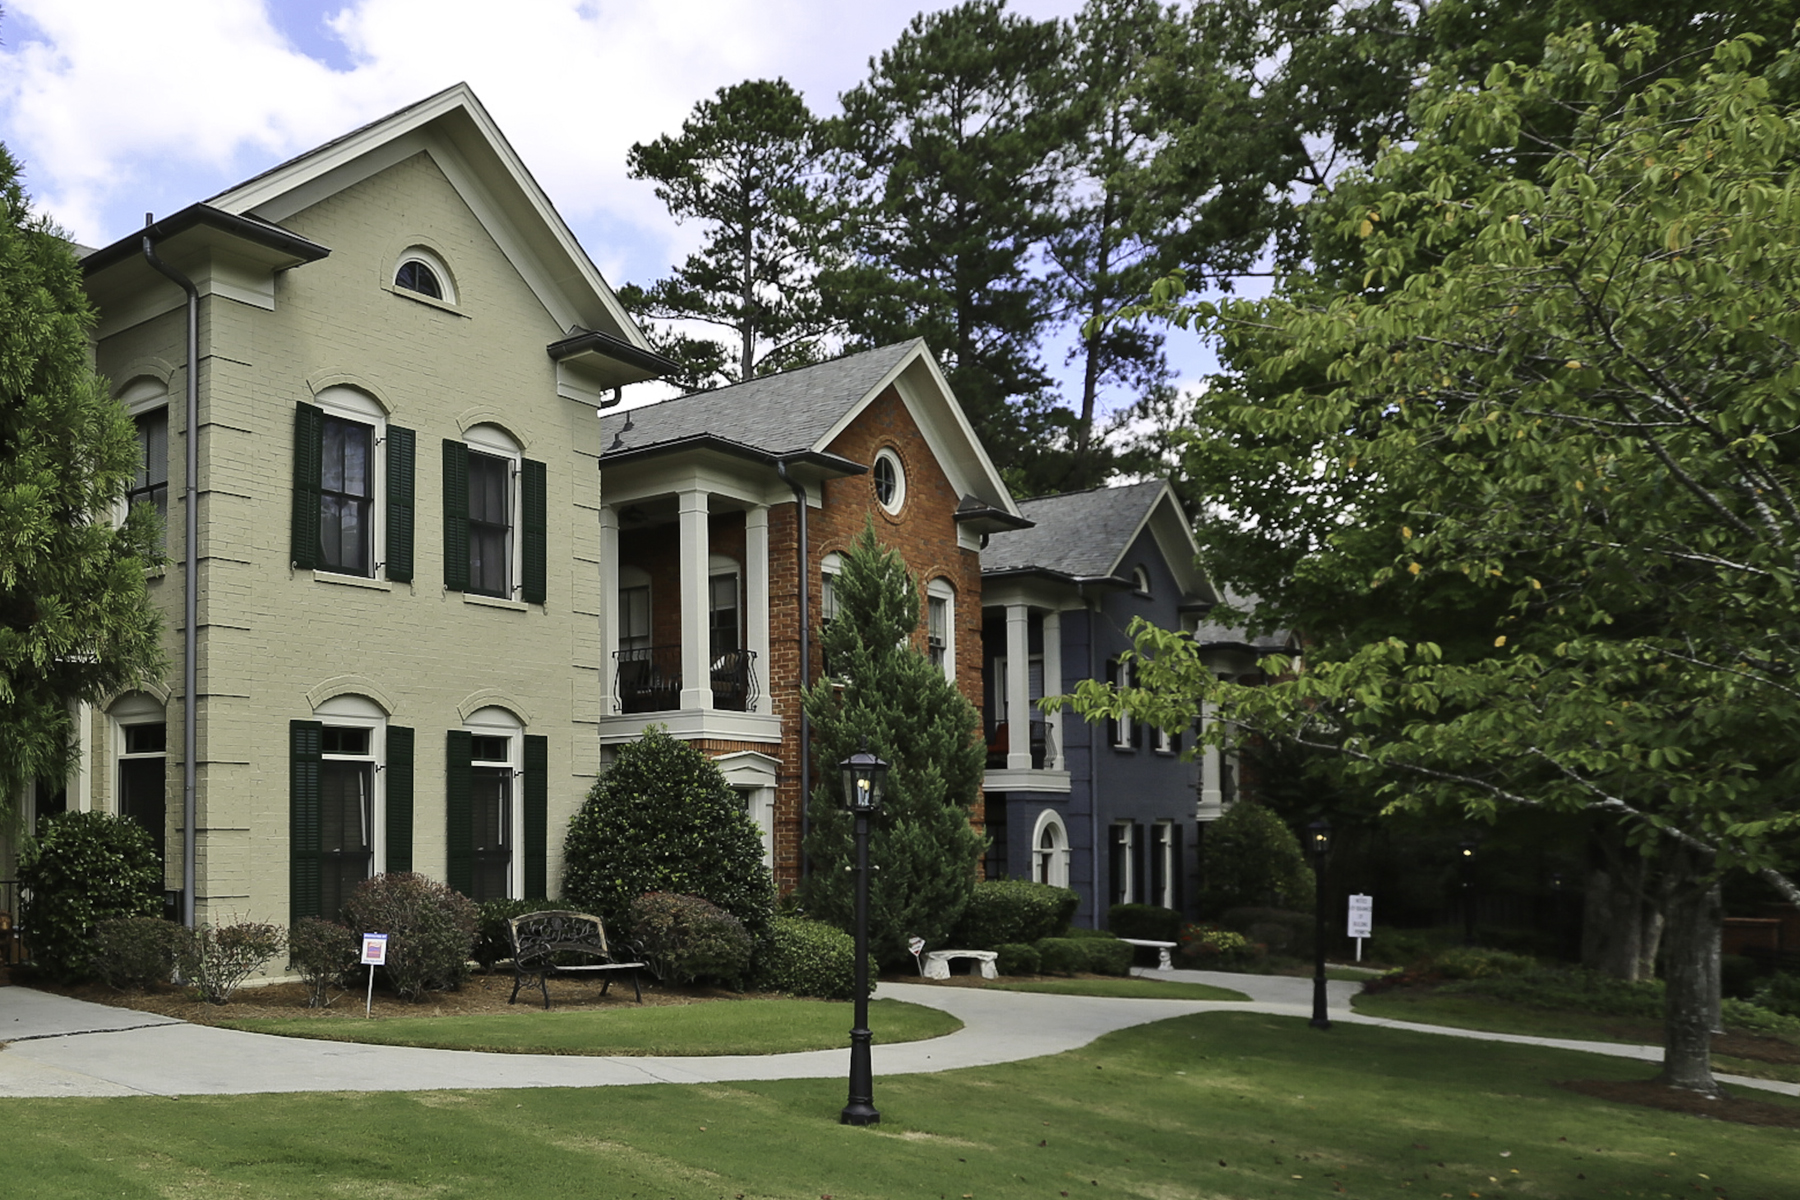 Townhouse for Sale at Large Townhome In A Gated Community Just Blocks From Lenox Mall 3127 Lenox Road NE Unit 38 Atlanta, Georgia, 30324 United States